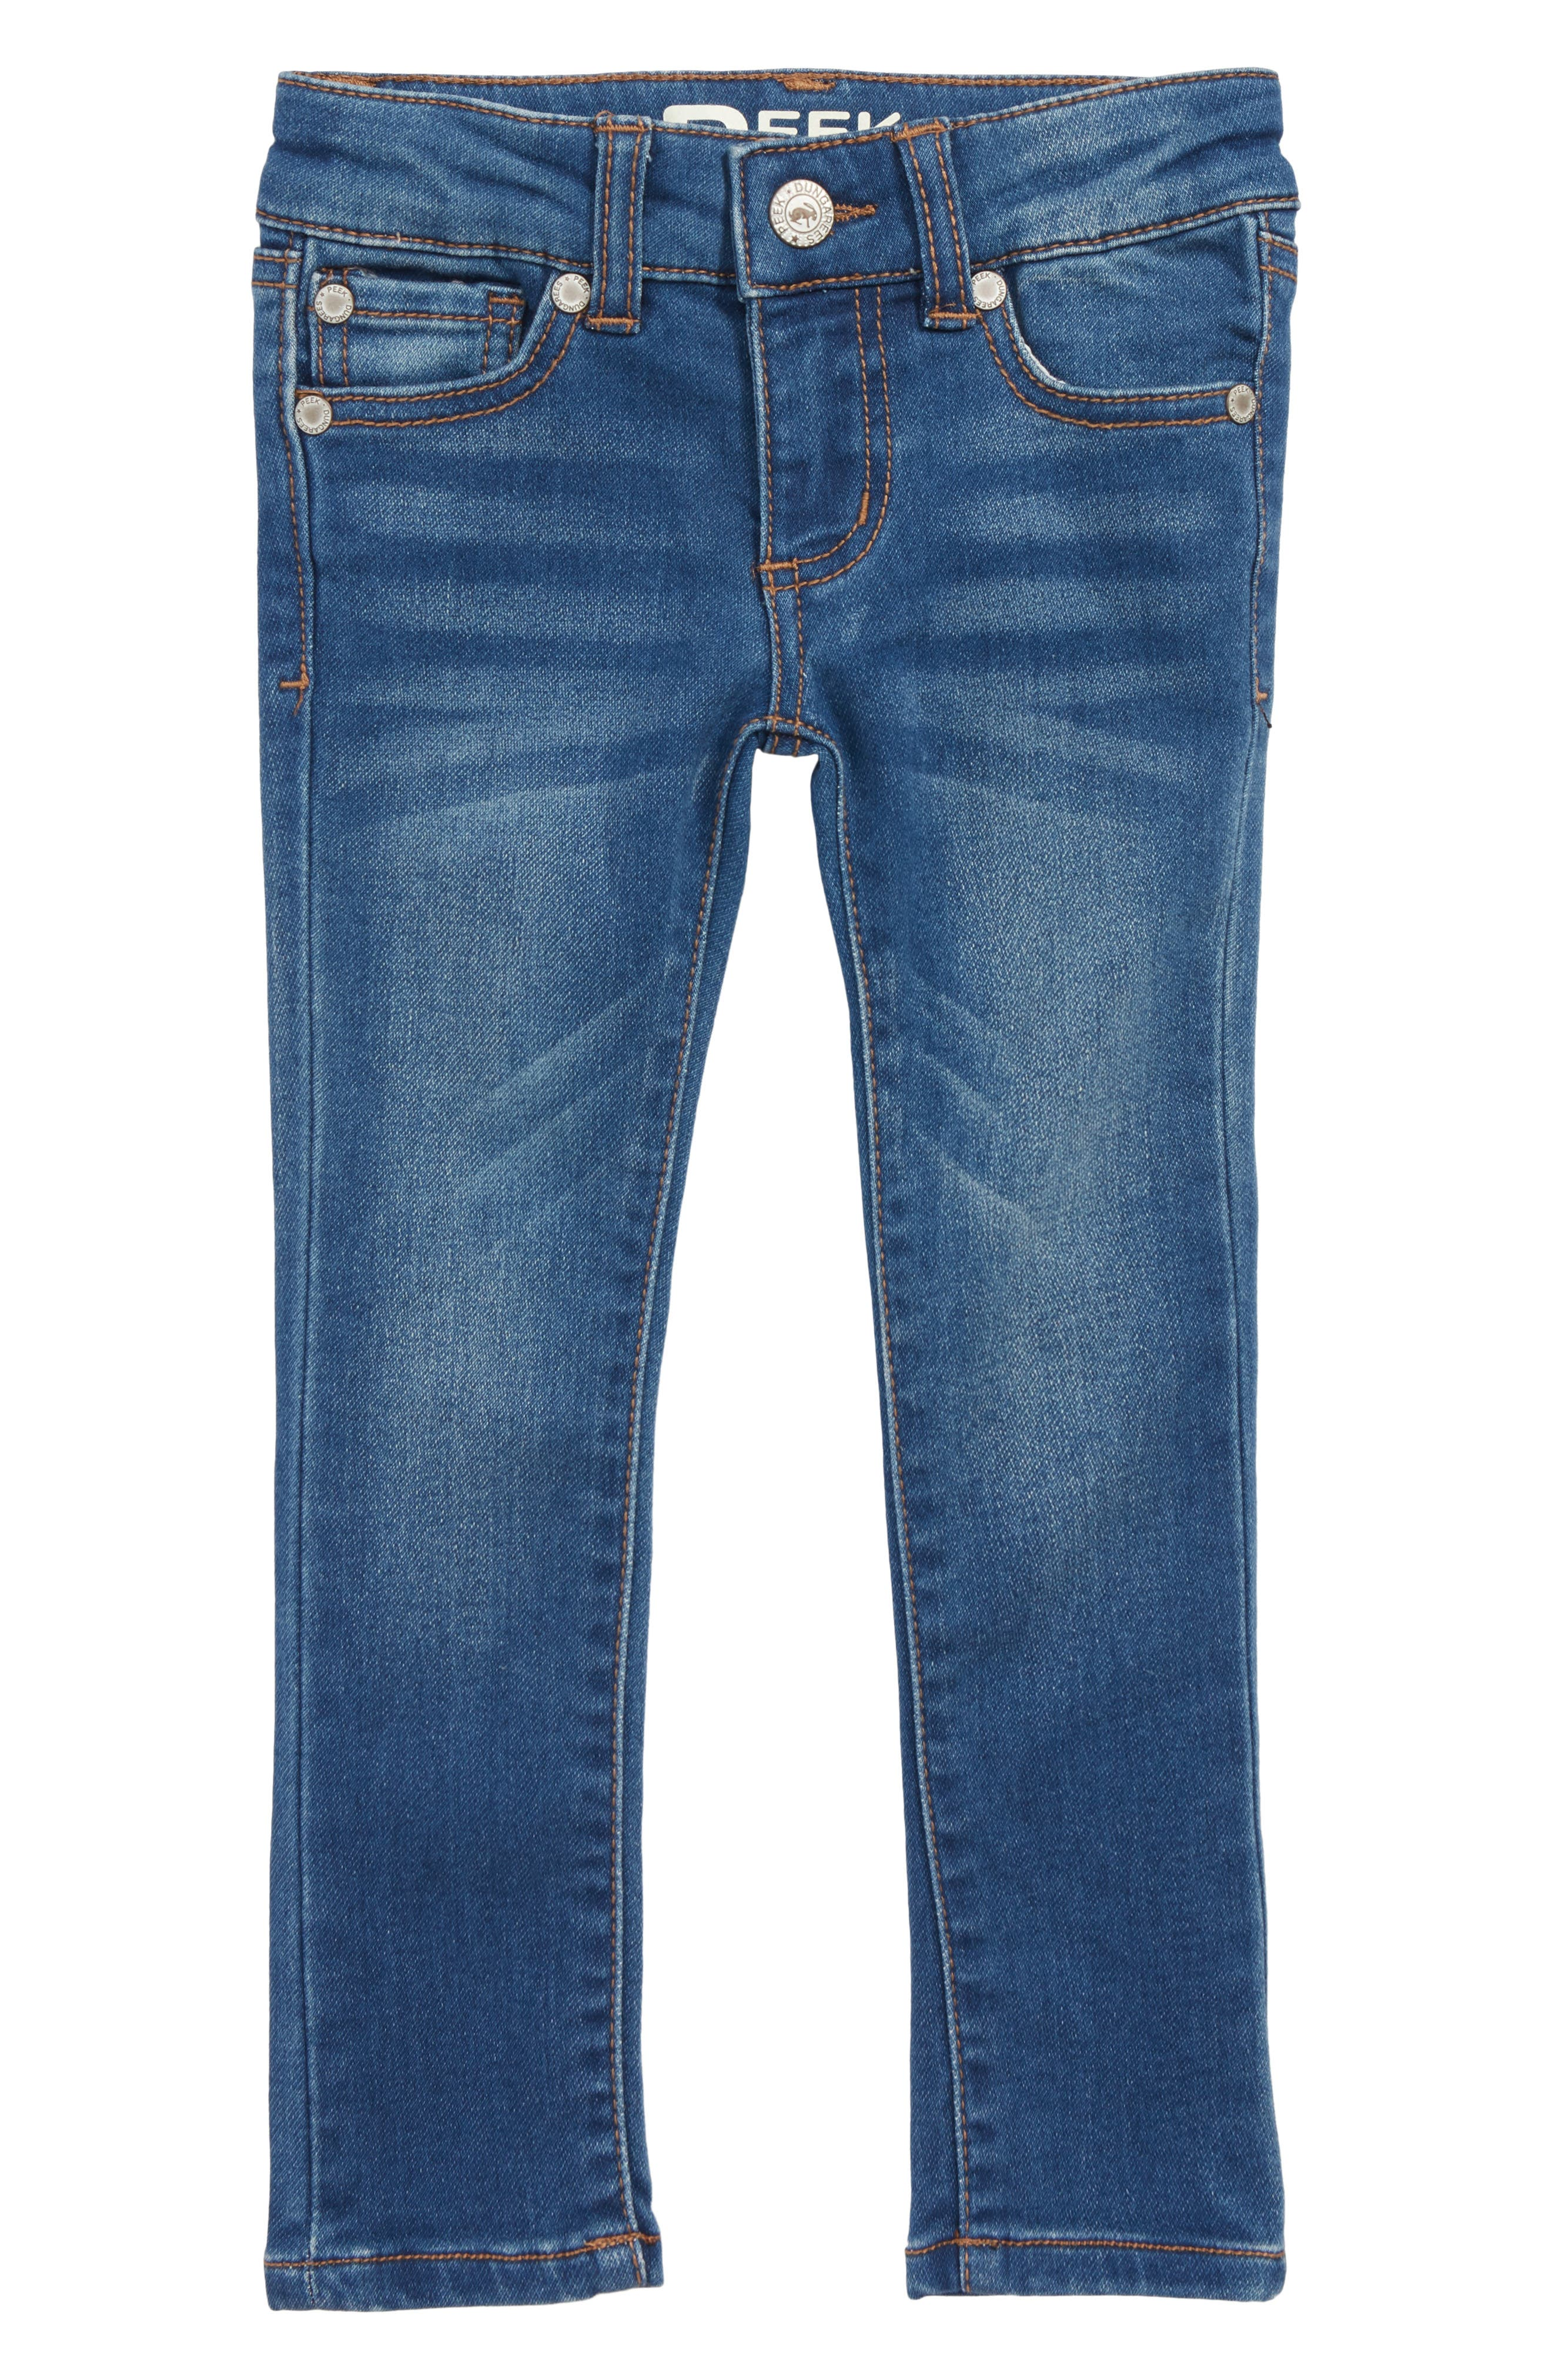 Taylor Jeans,                         Main,                         color, MEDIUM RINSE